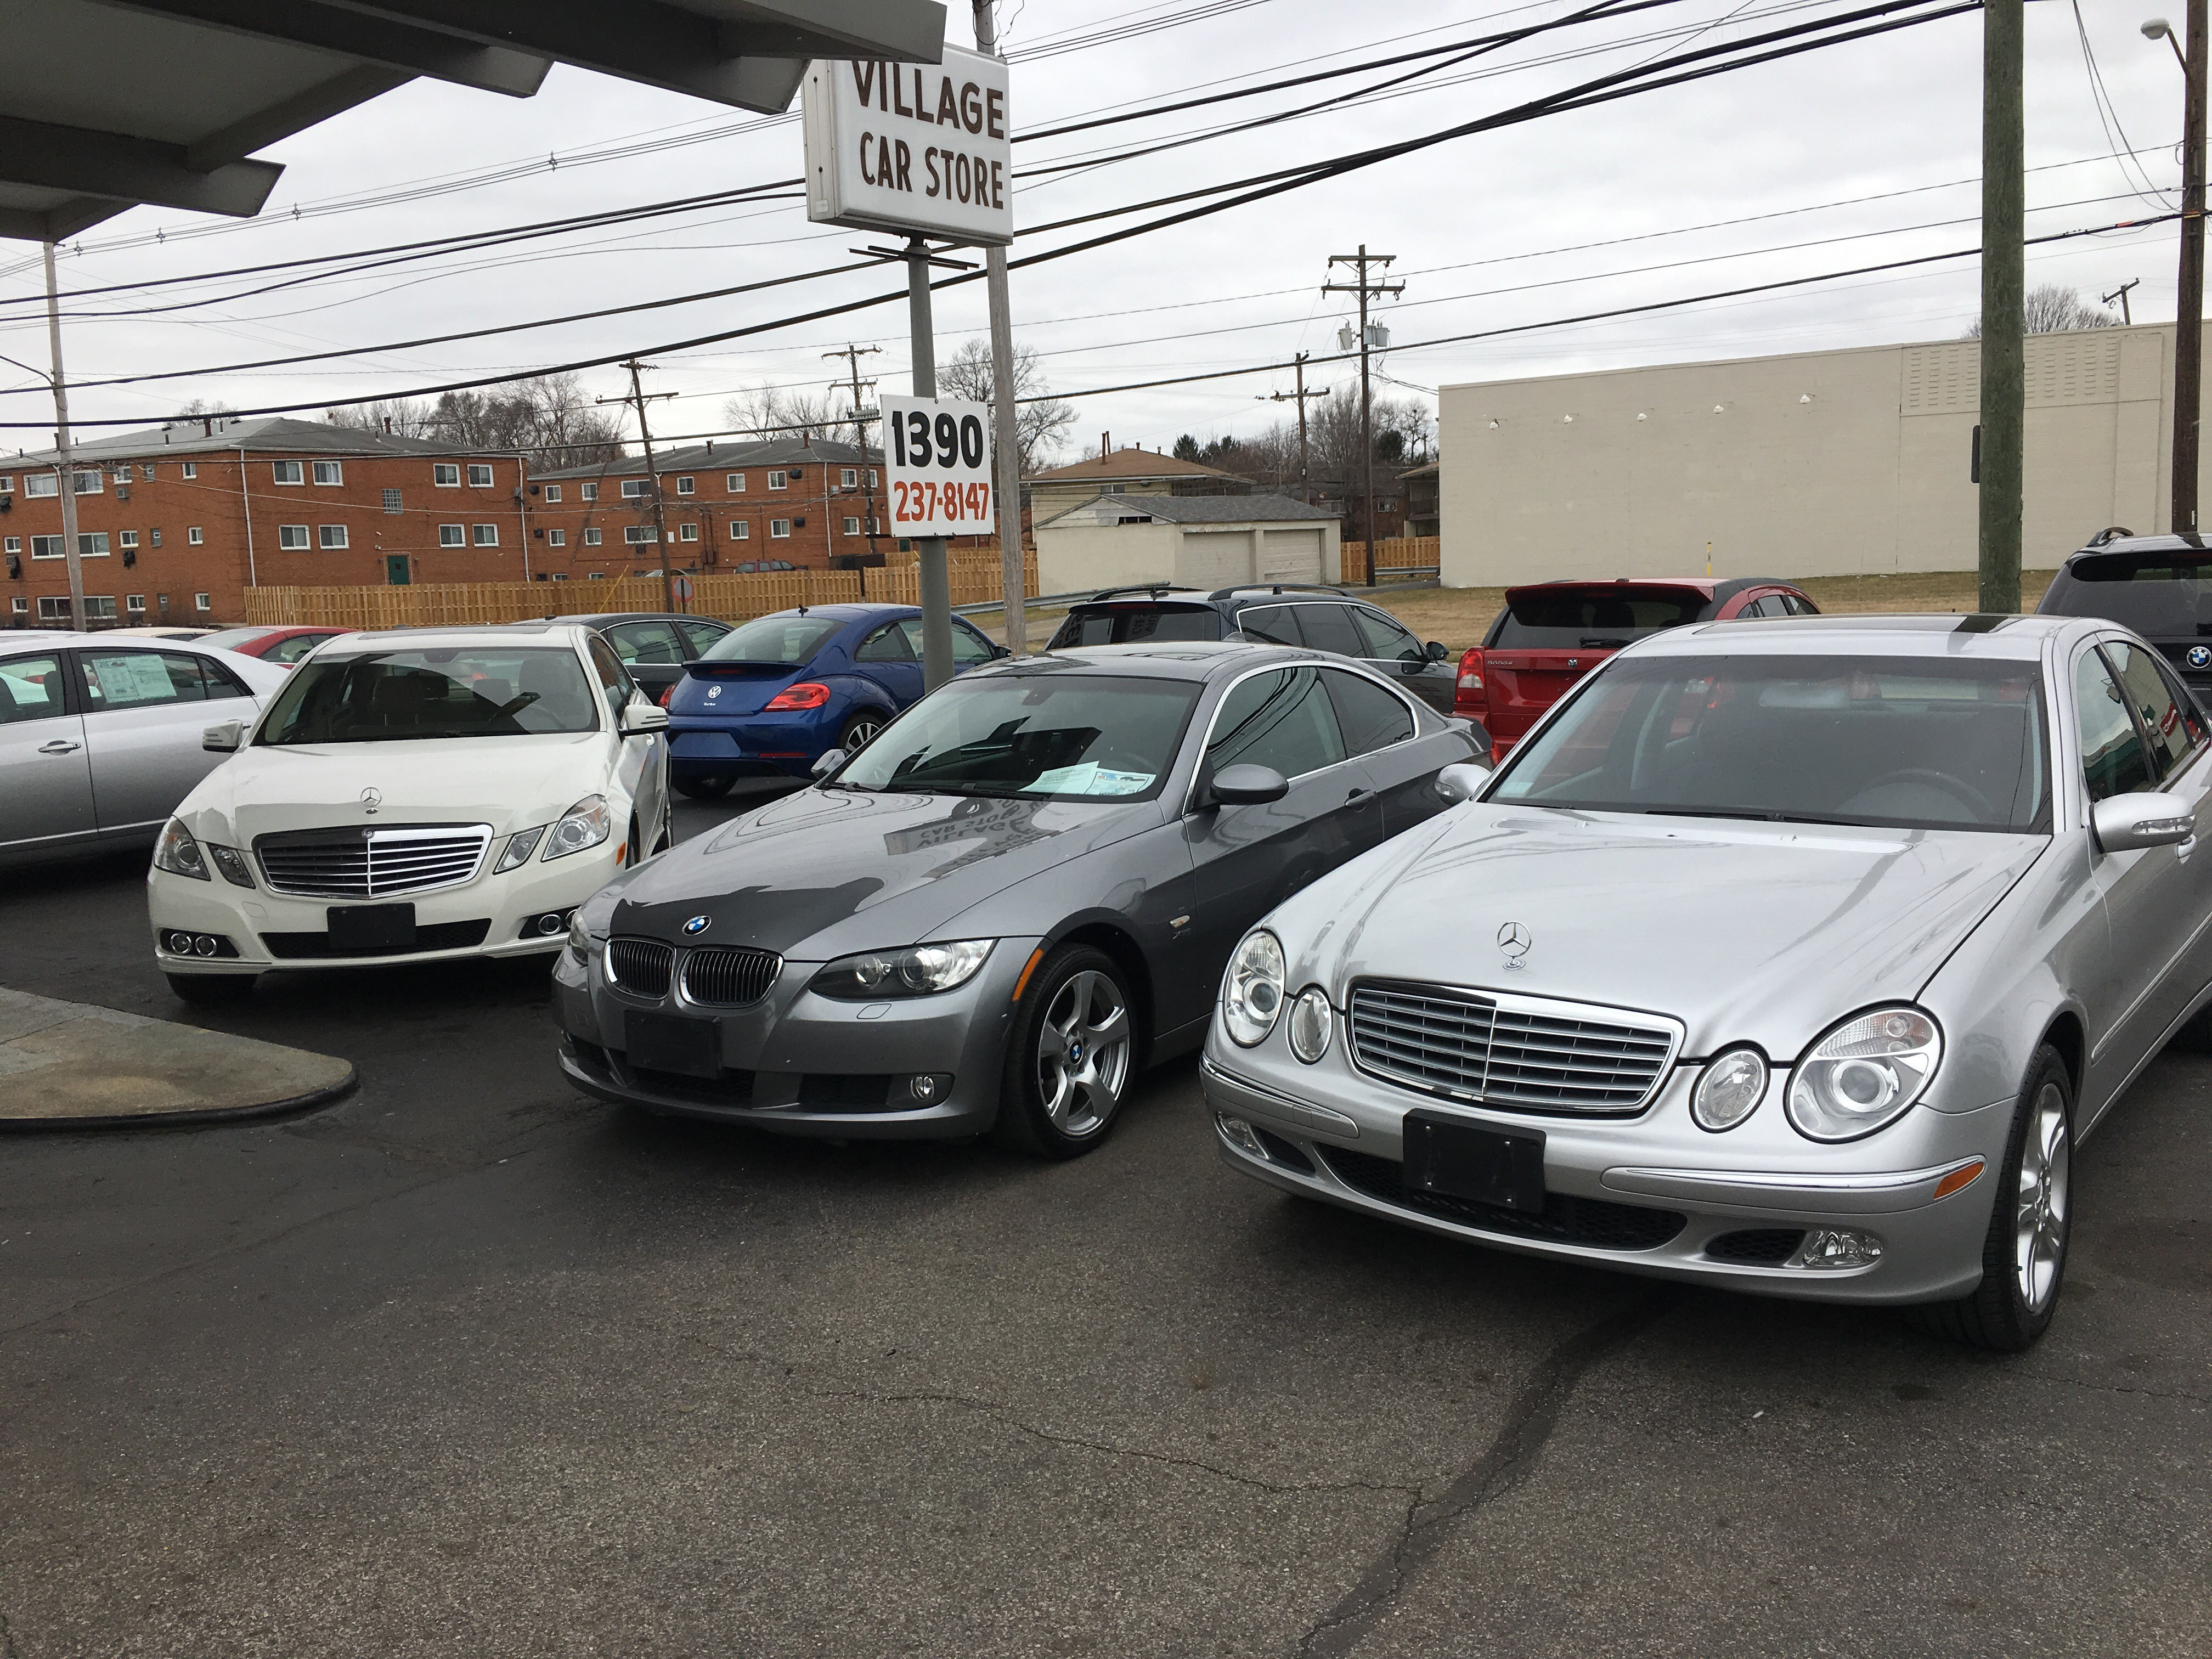 used car dealerships columbus ohio new village car store 1390 courtright rd columbus oh auto dealers